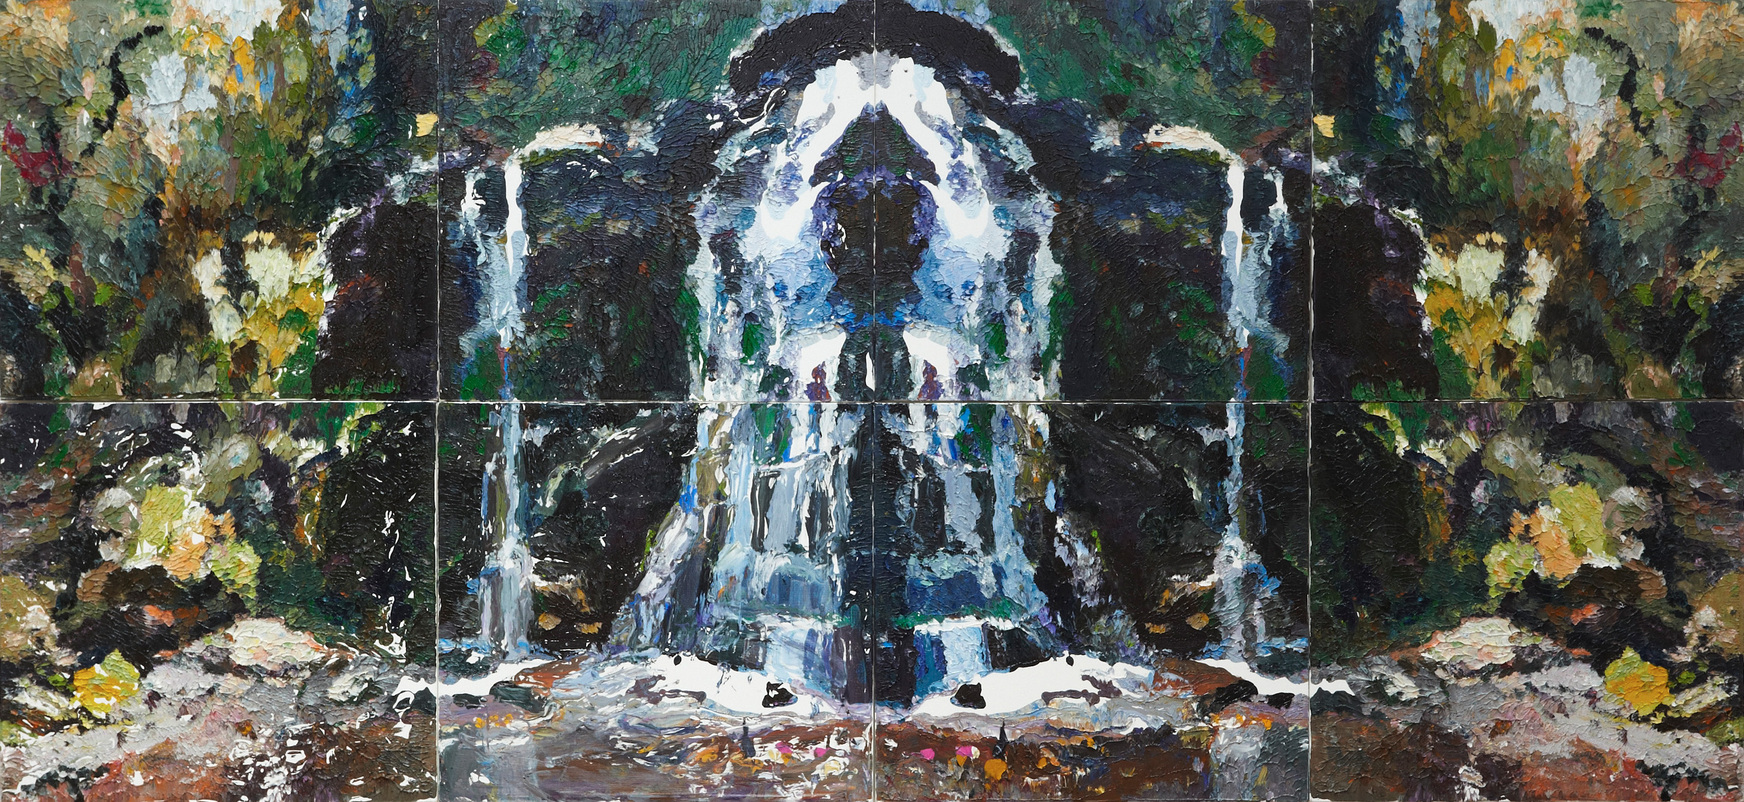 D Exhibition Melbourne : Ben quilty at the saatchi gallery things just got